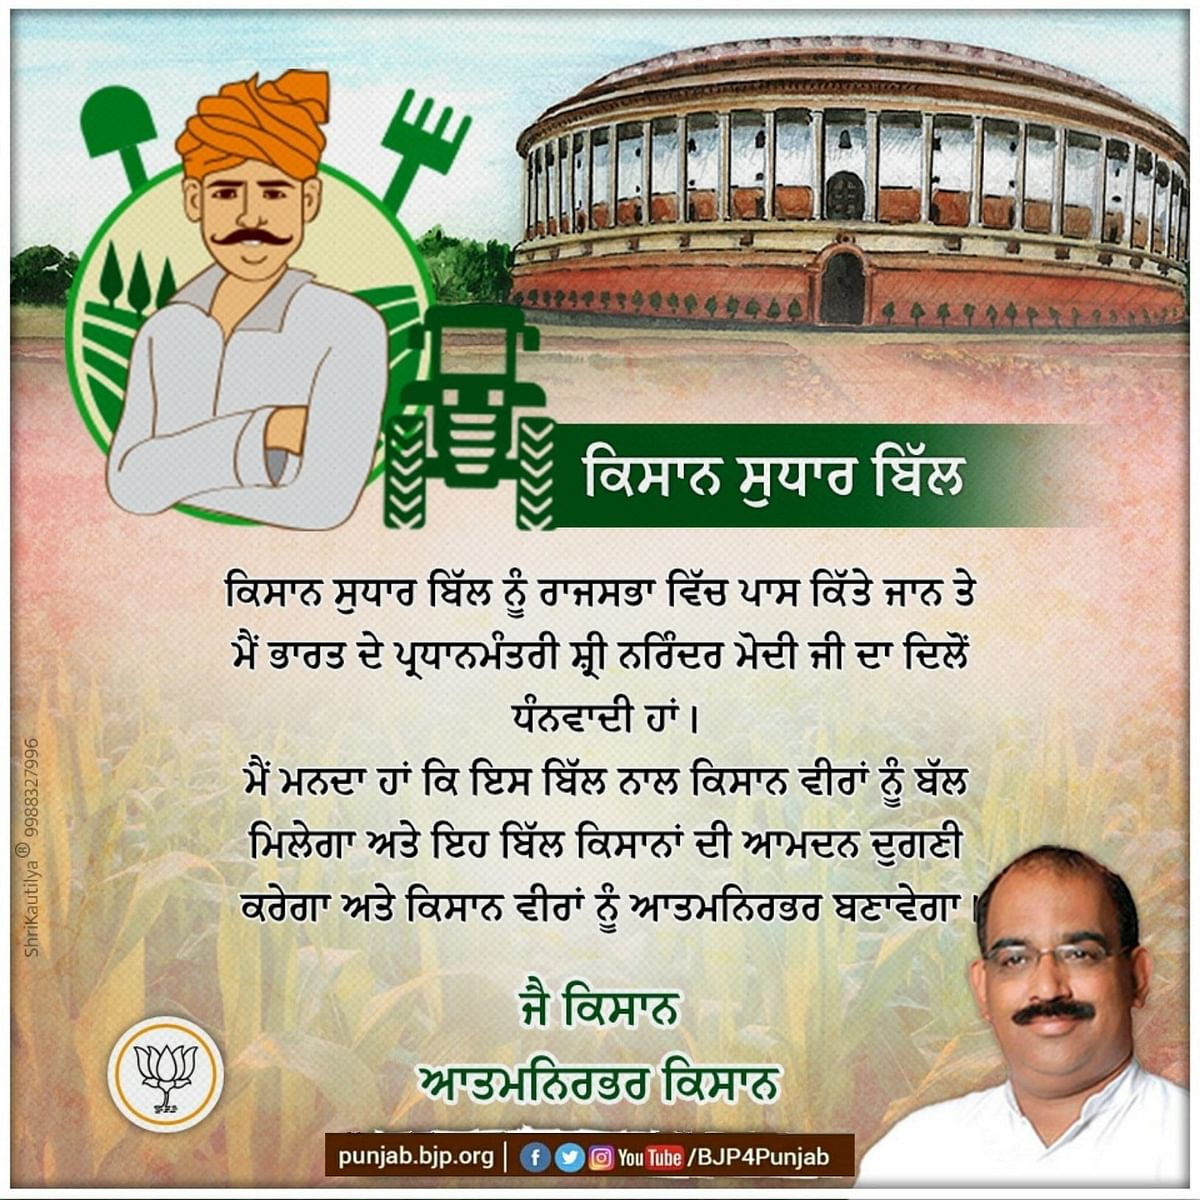 Punjab BJP's post on the farm Bill